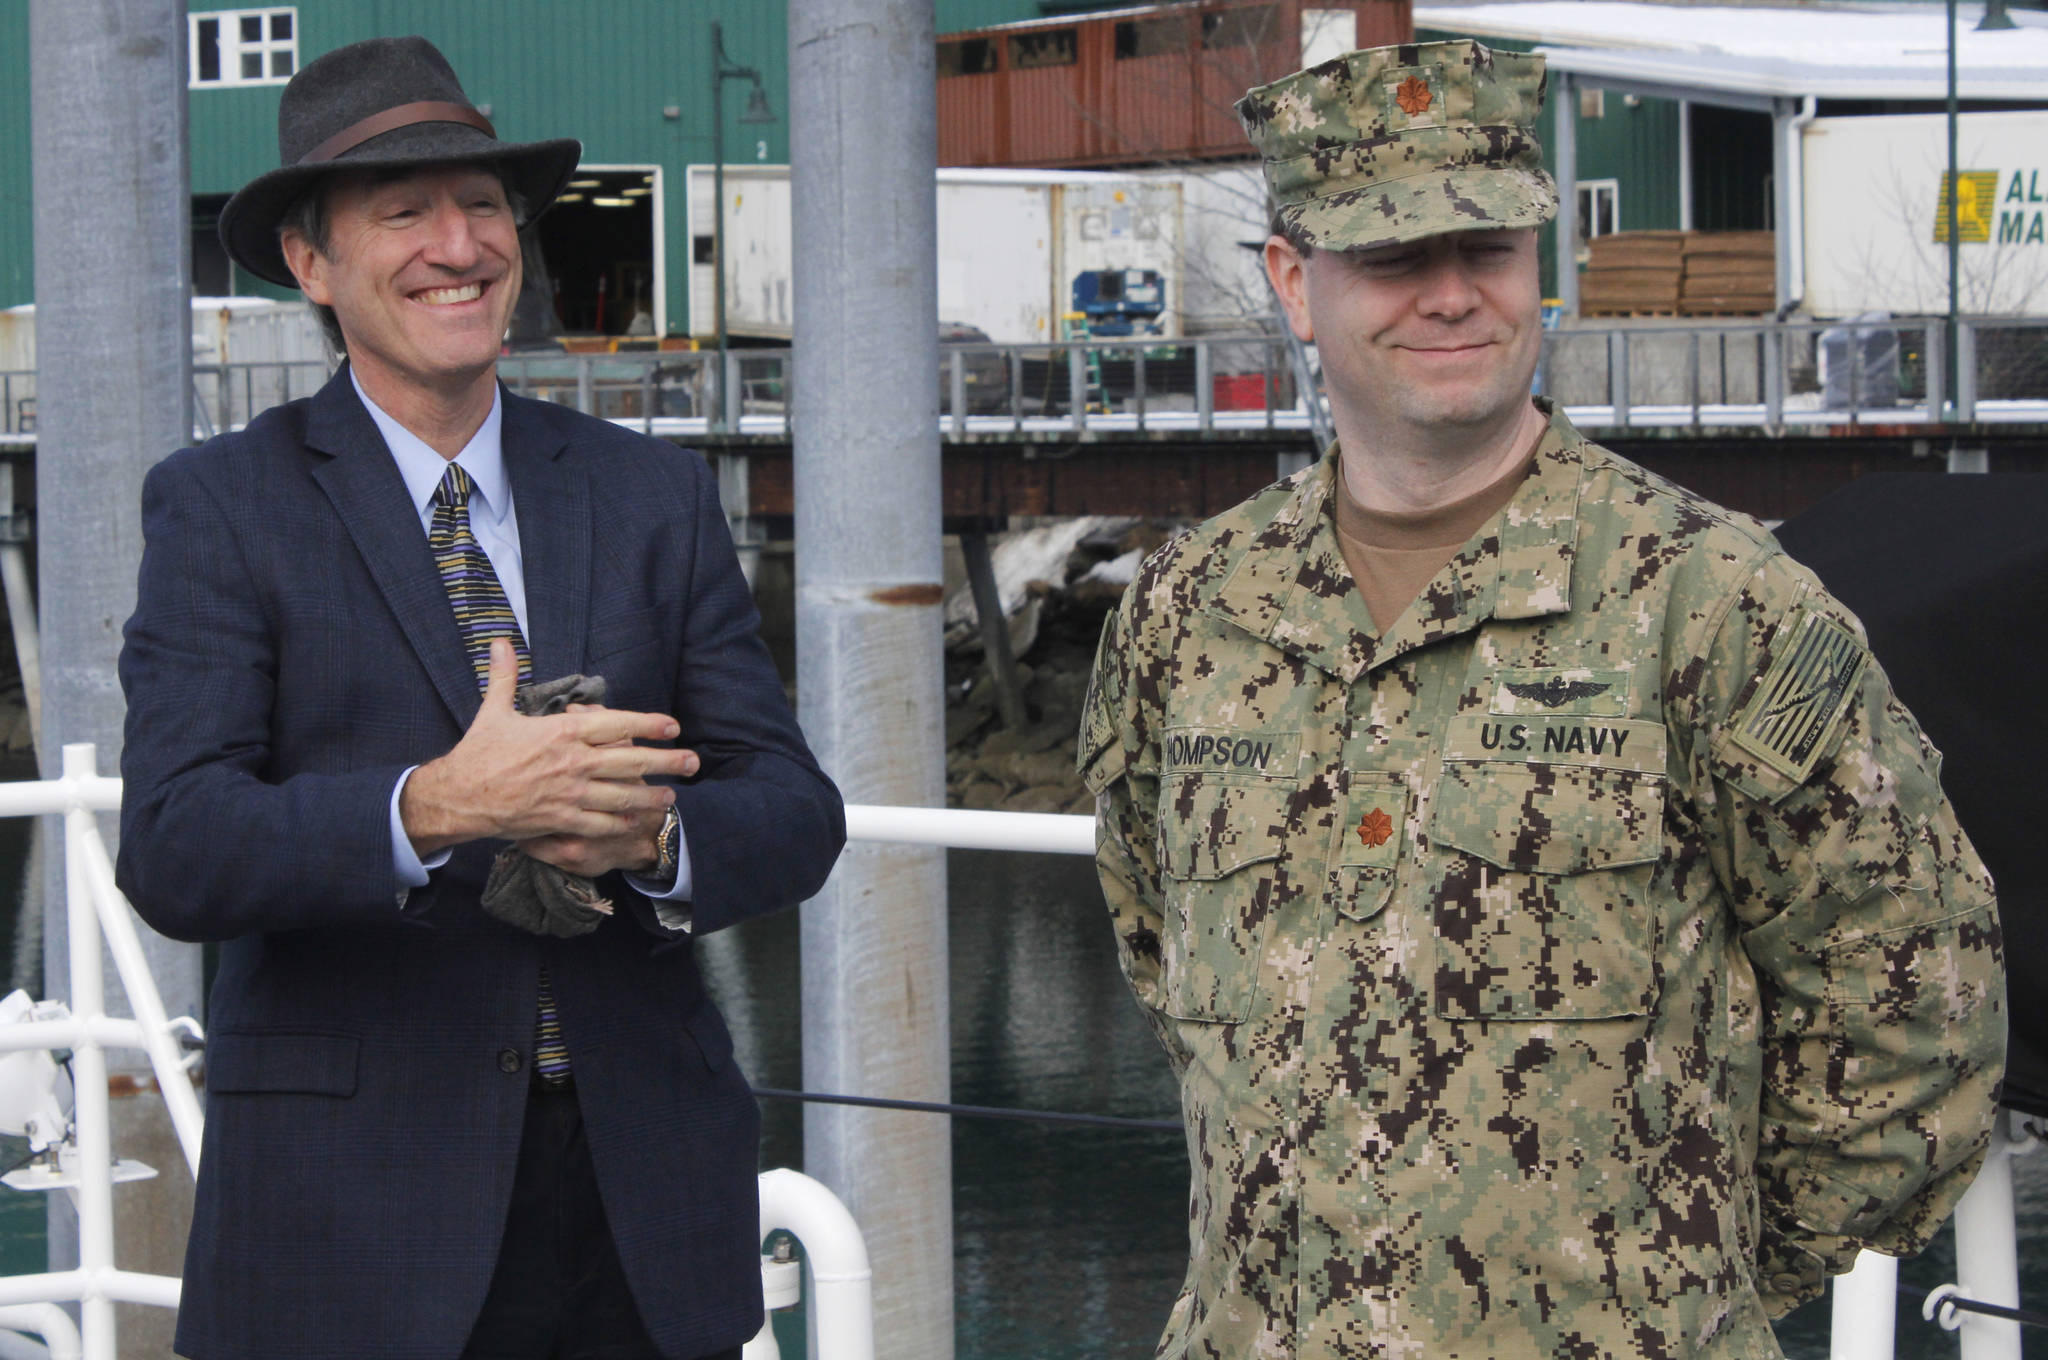 Marvin Heinze, left, the Deputy Director of Operations and Plans Mine Warfare Task Force, stands alongside Compact Fleet Maritime Homeland Defense Detachment Alaska Officer-in-Charge James Thompson during a tour of the U.S. Coast Guard Cutter John McCormick on March 13, 2018. (Alex McCarthy | Juneau Empire)